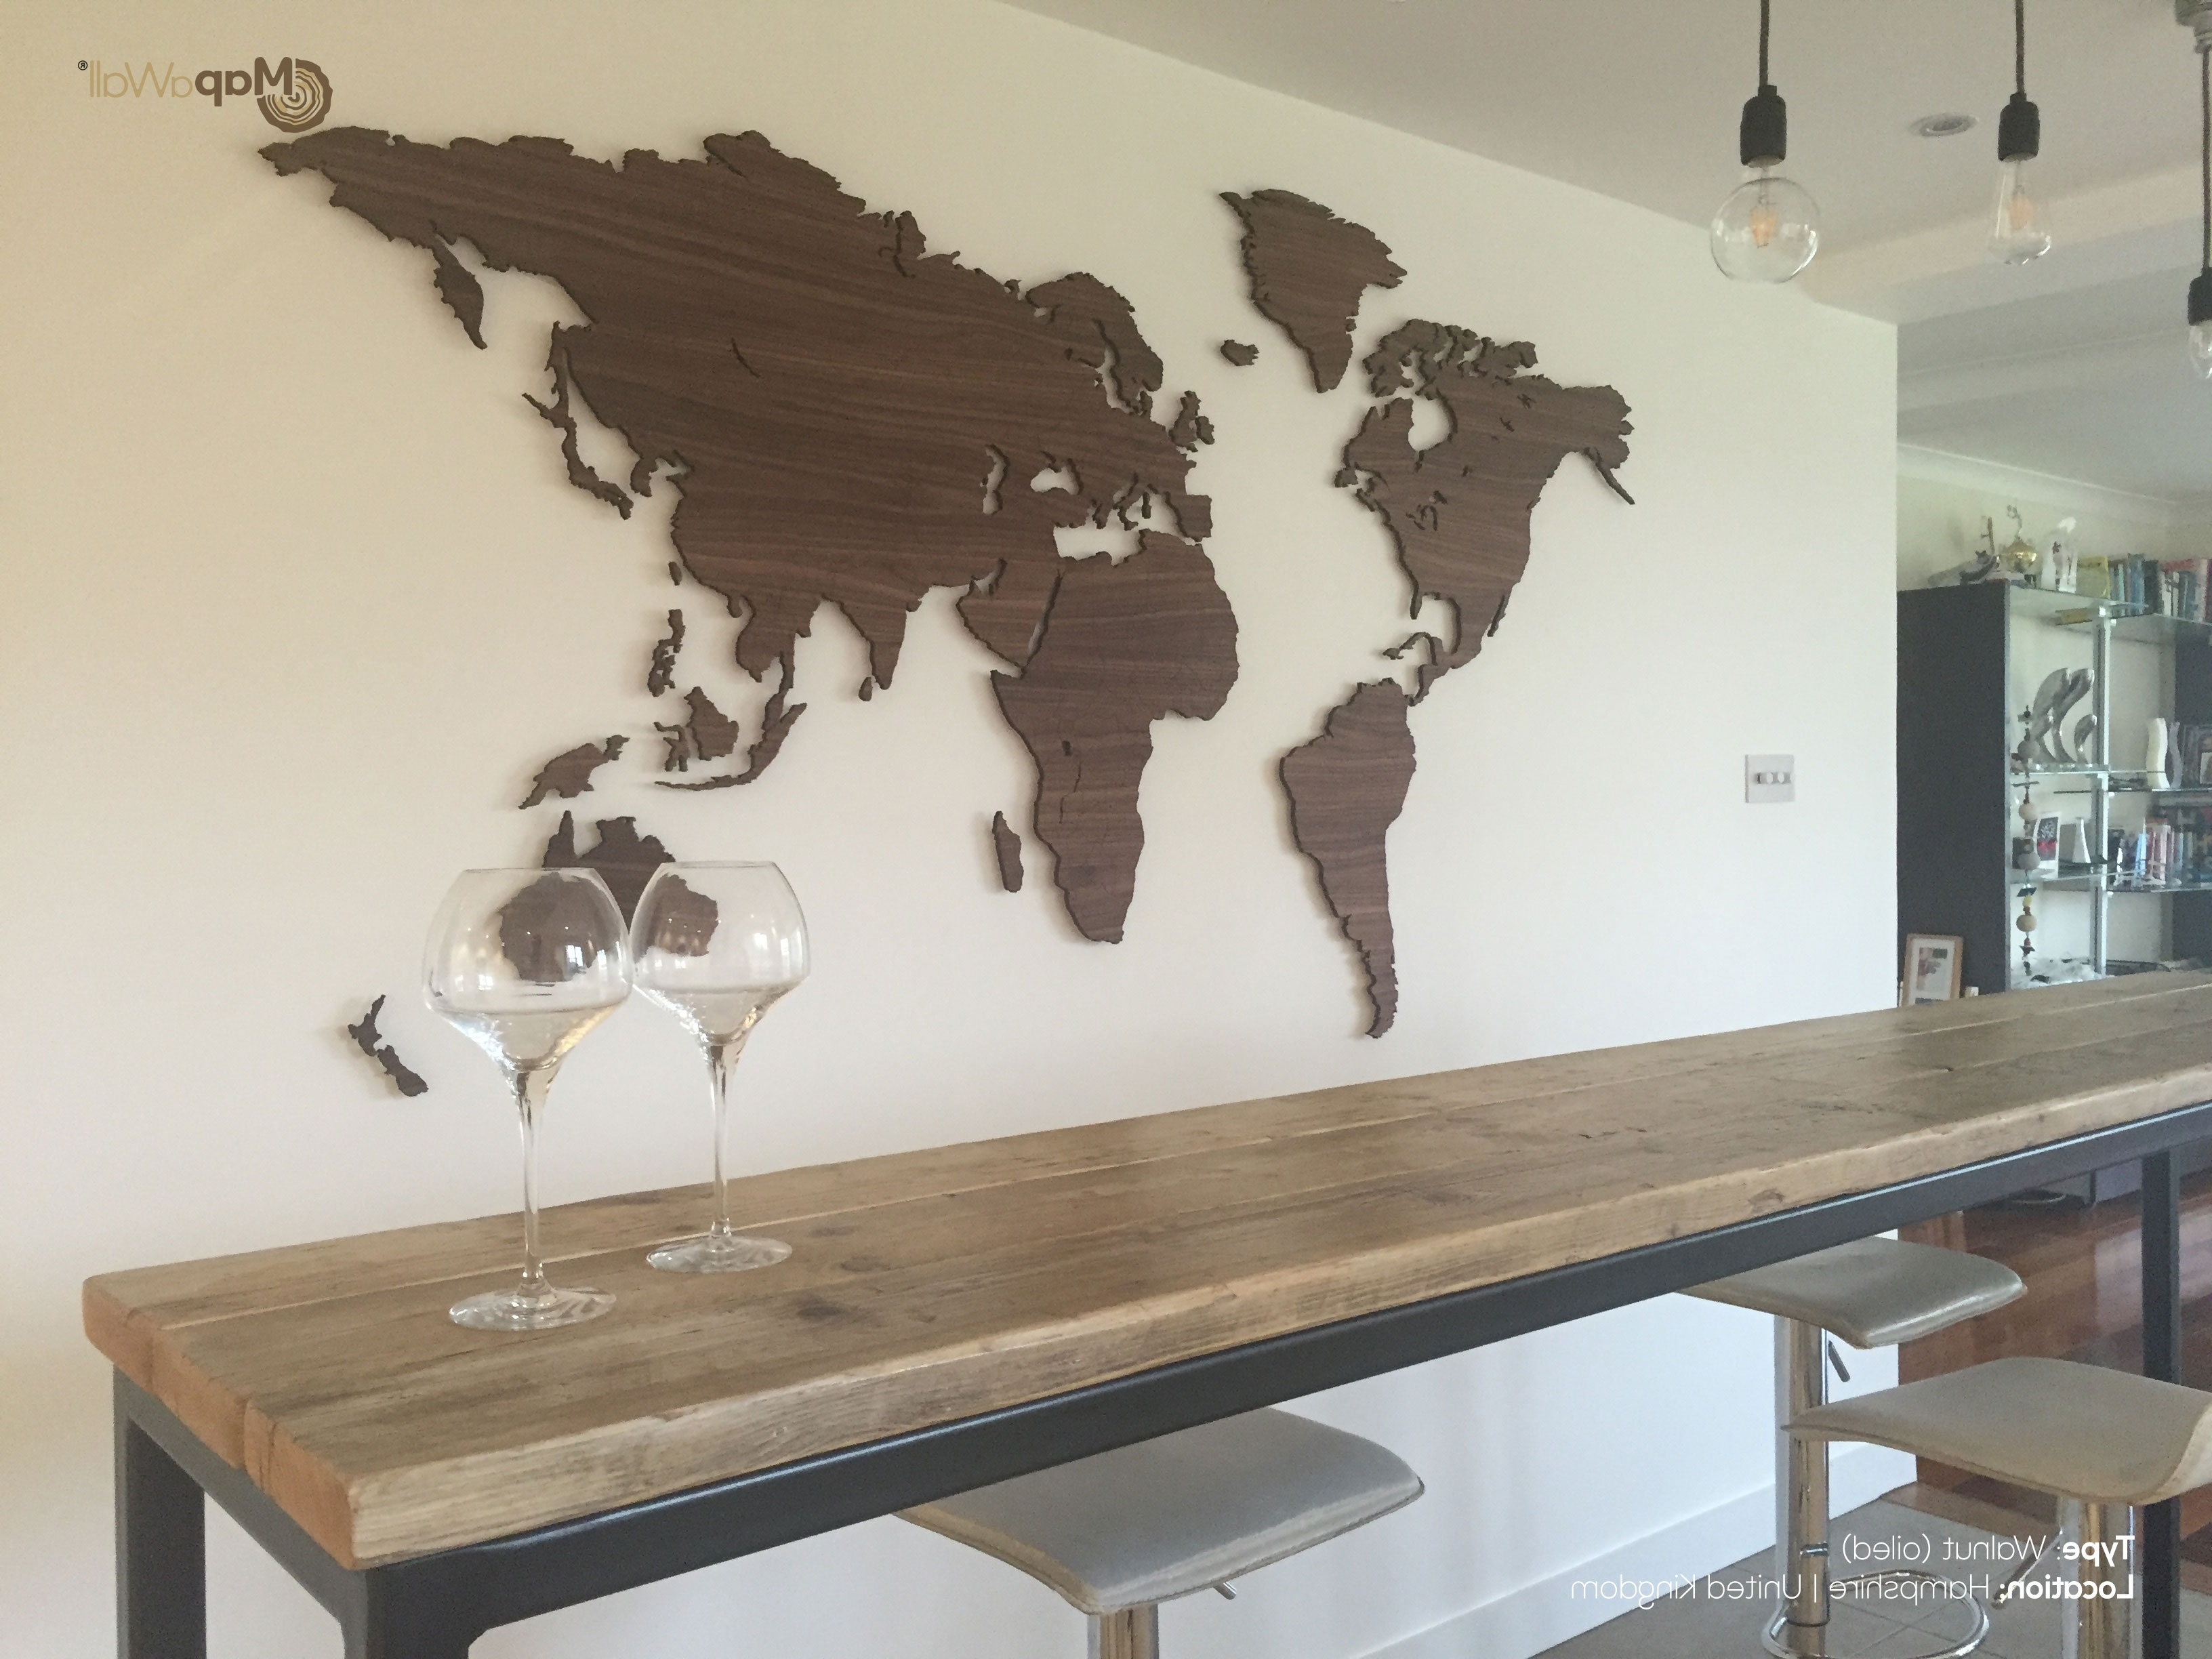 Marvellous Inspiration Ideas Wooden World Map Wall Art Home Decor With Regard To Favorite Wood Map Wall Art (View 13 of 15)